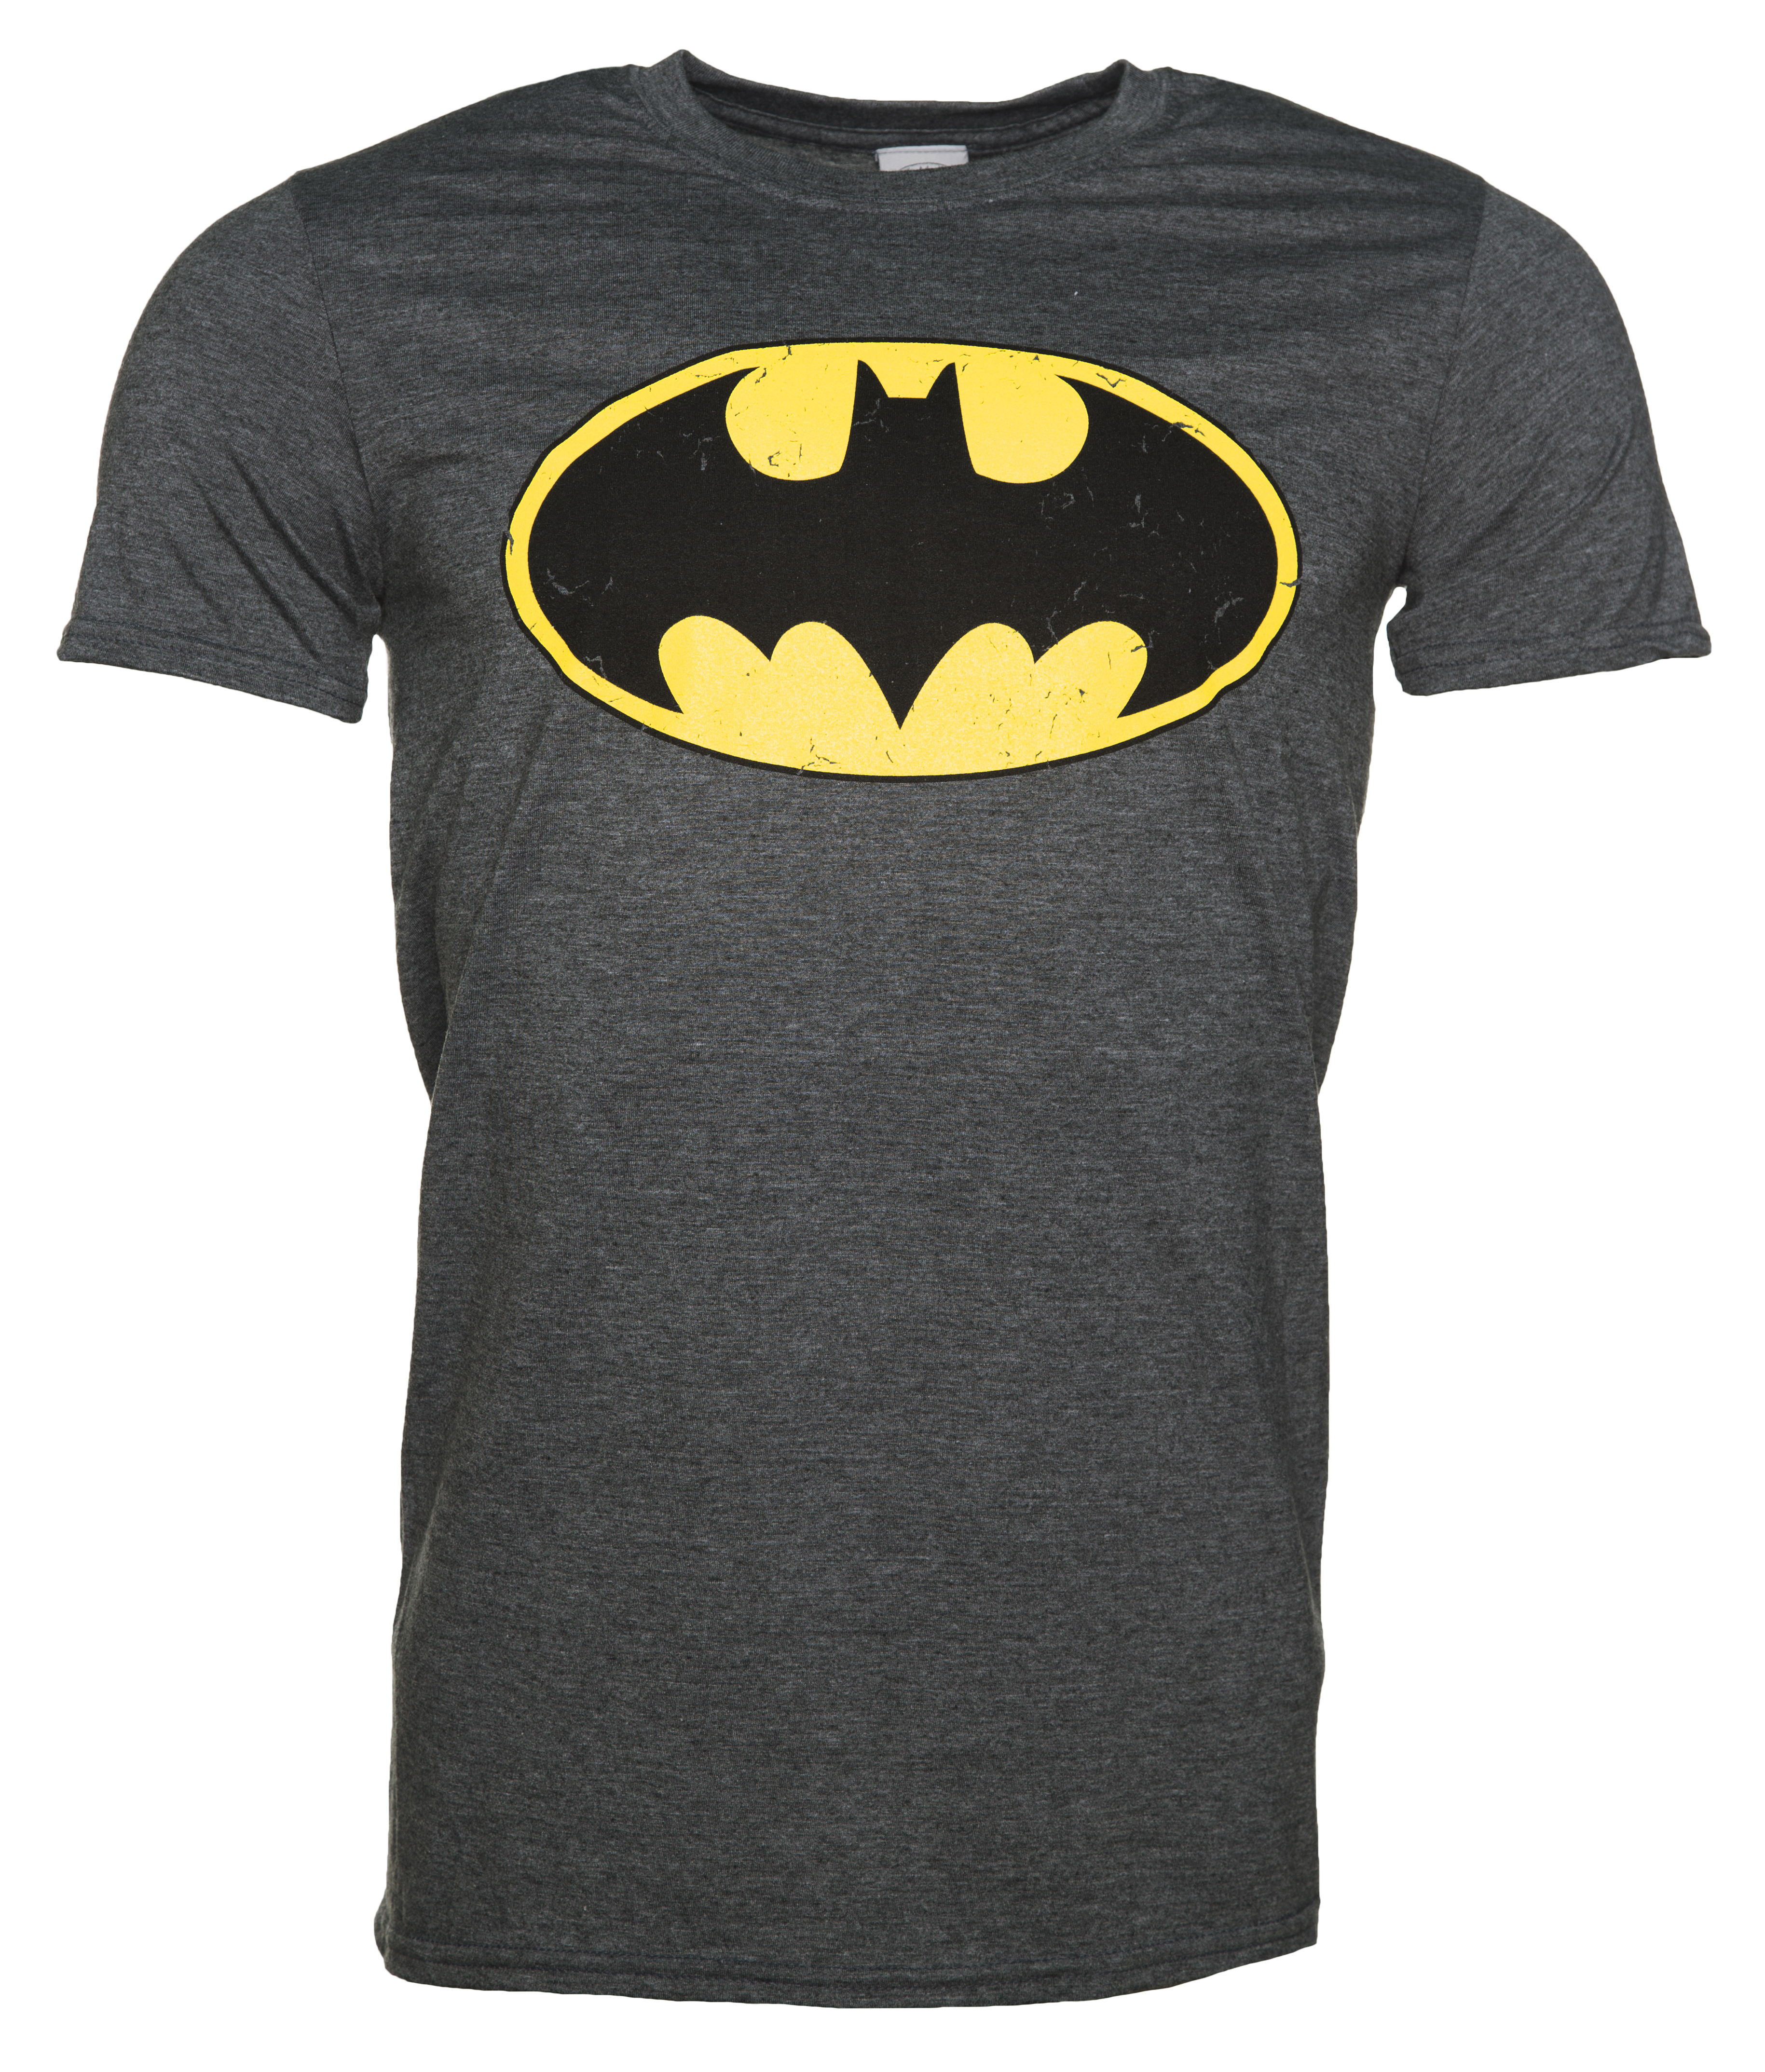 men 39 s charcoal distressed batman logo t shirt. Black Bedroom Furniture Sets. Home Design Ideas